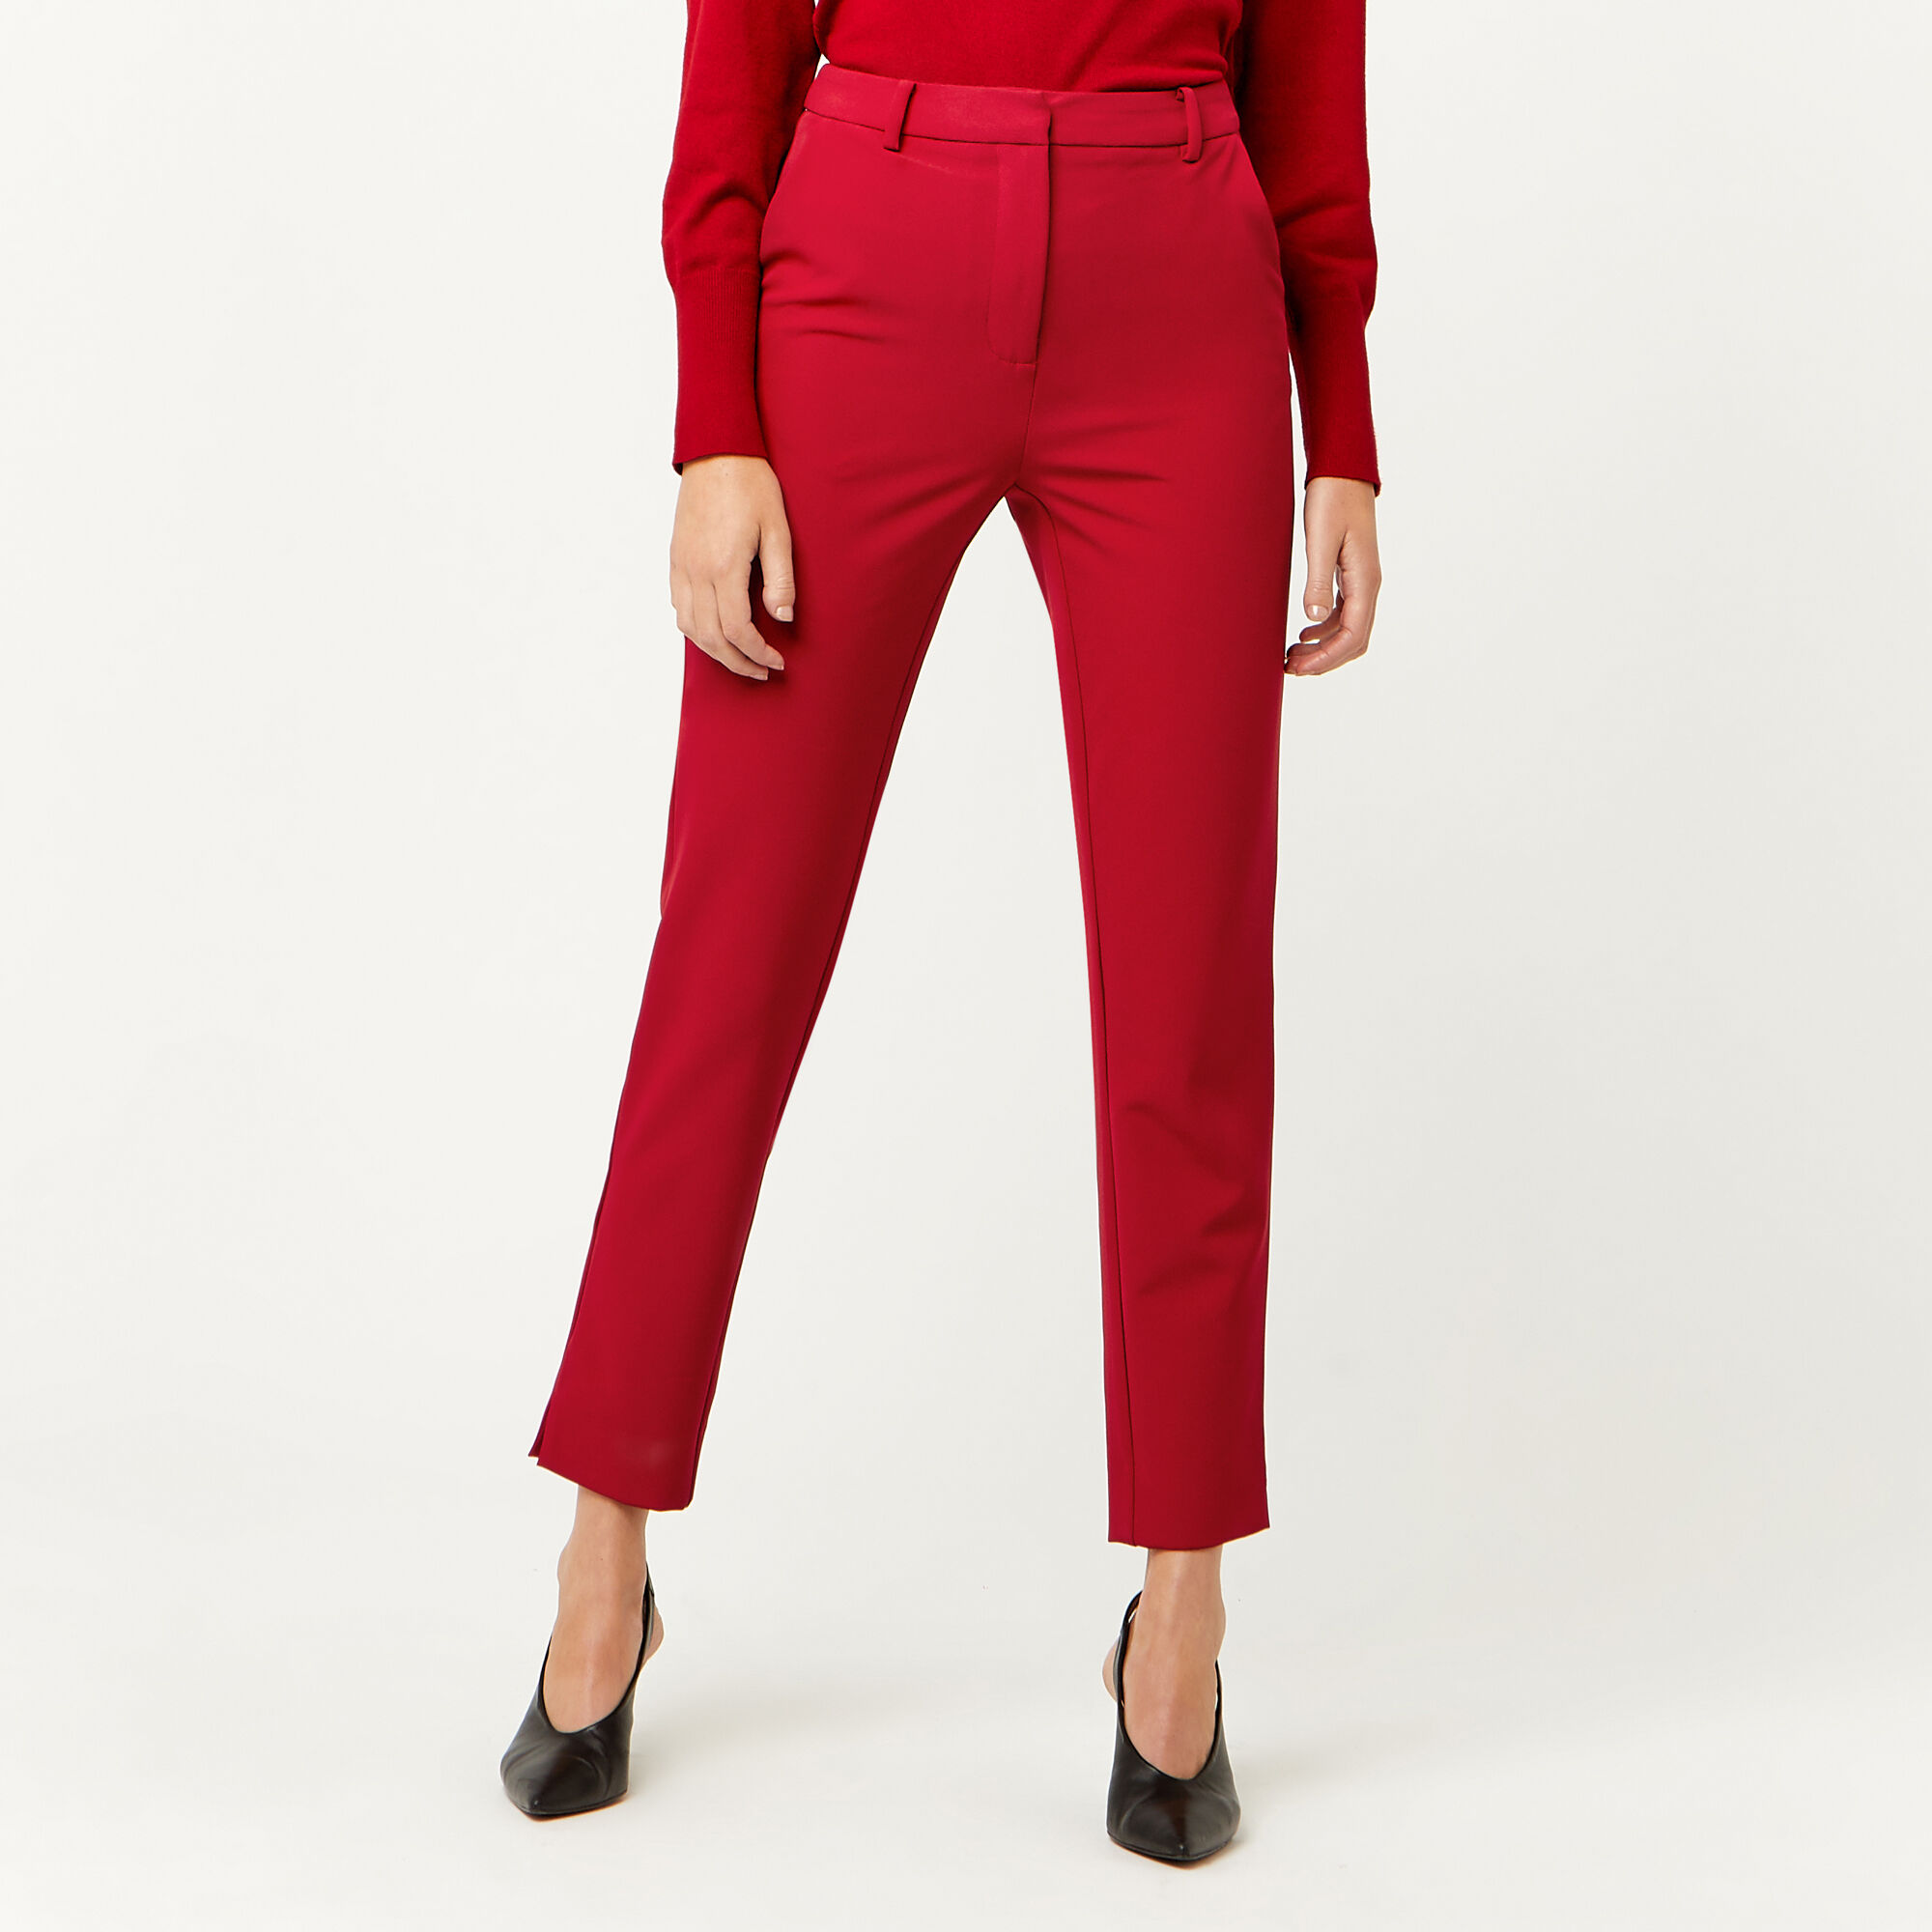 Warehouse, SLIM LEG TROUSER Bright Red 1